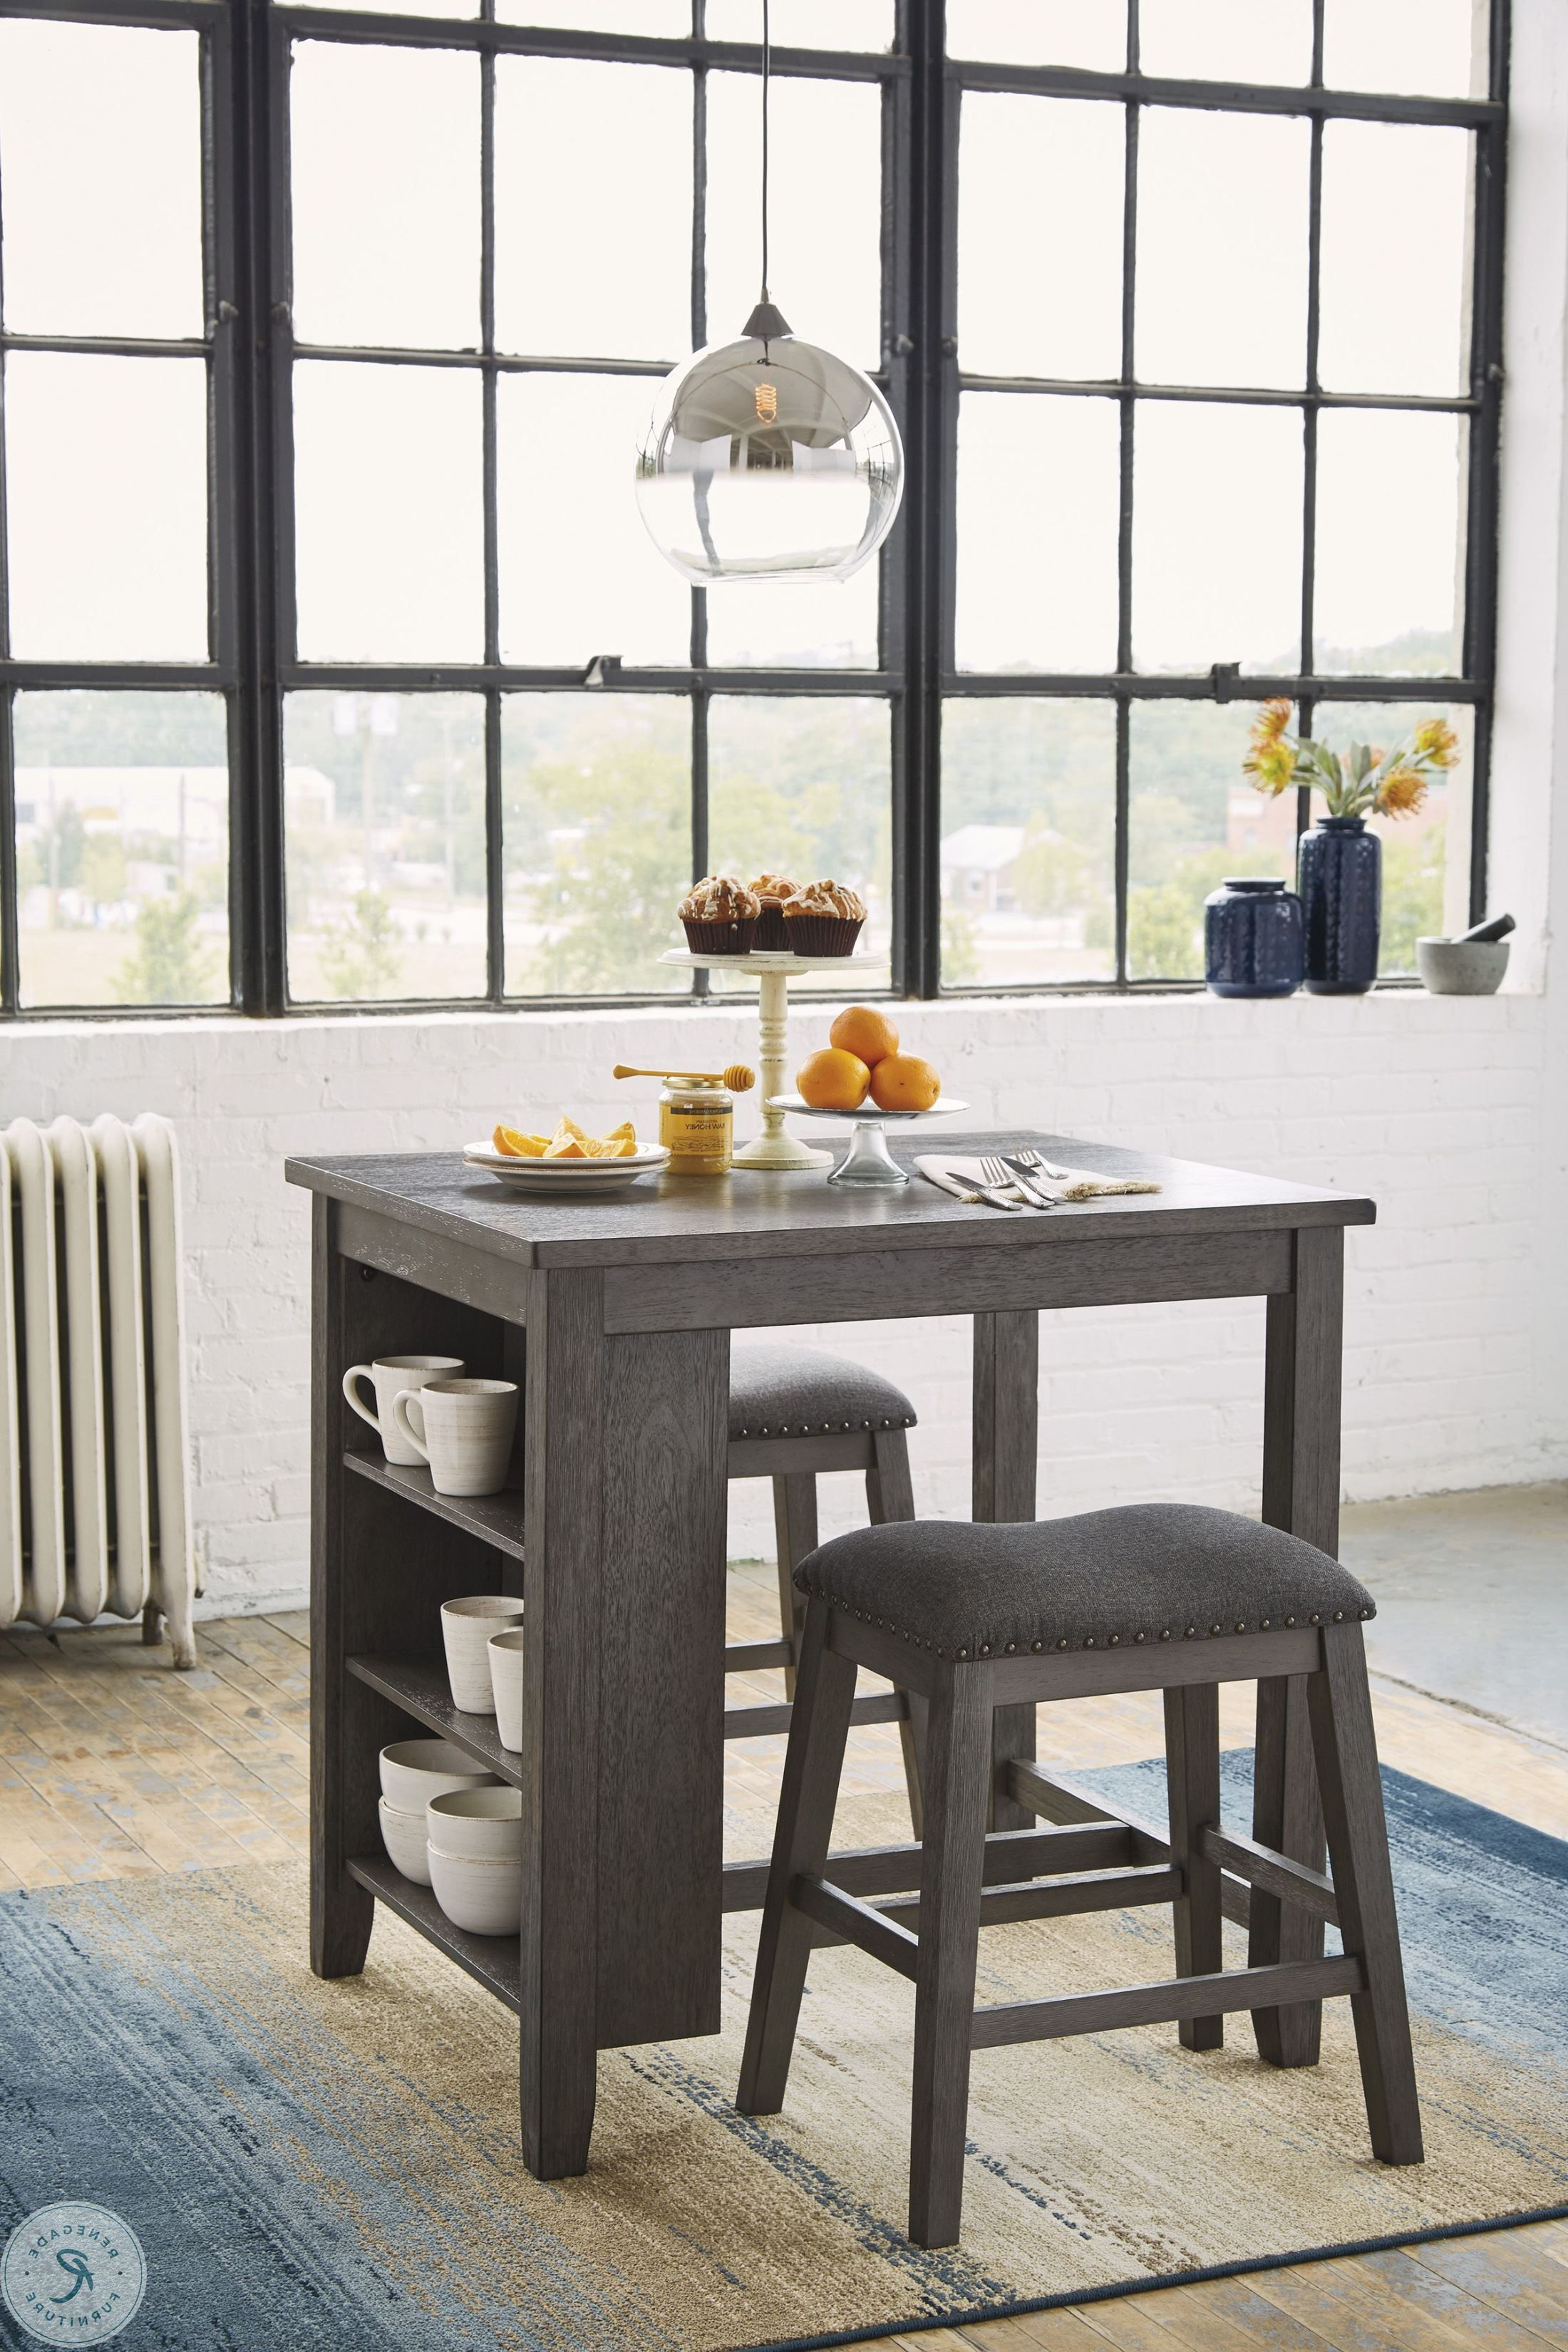 Fashionable Foskey Antique Black Round Bar Table From Furniture Of America Regarding Anette 3 Piece Counter Height Dining Sets (View 15 of 25)